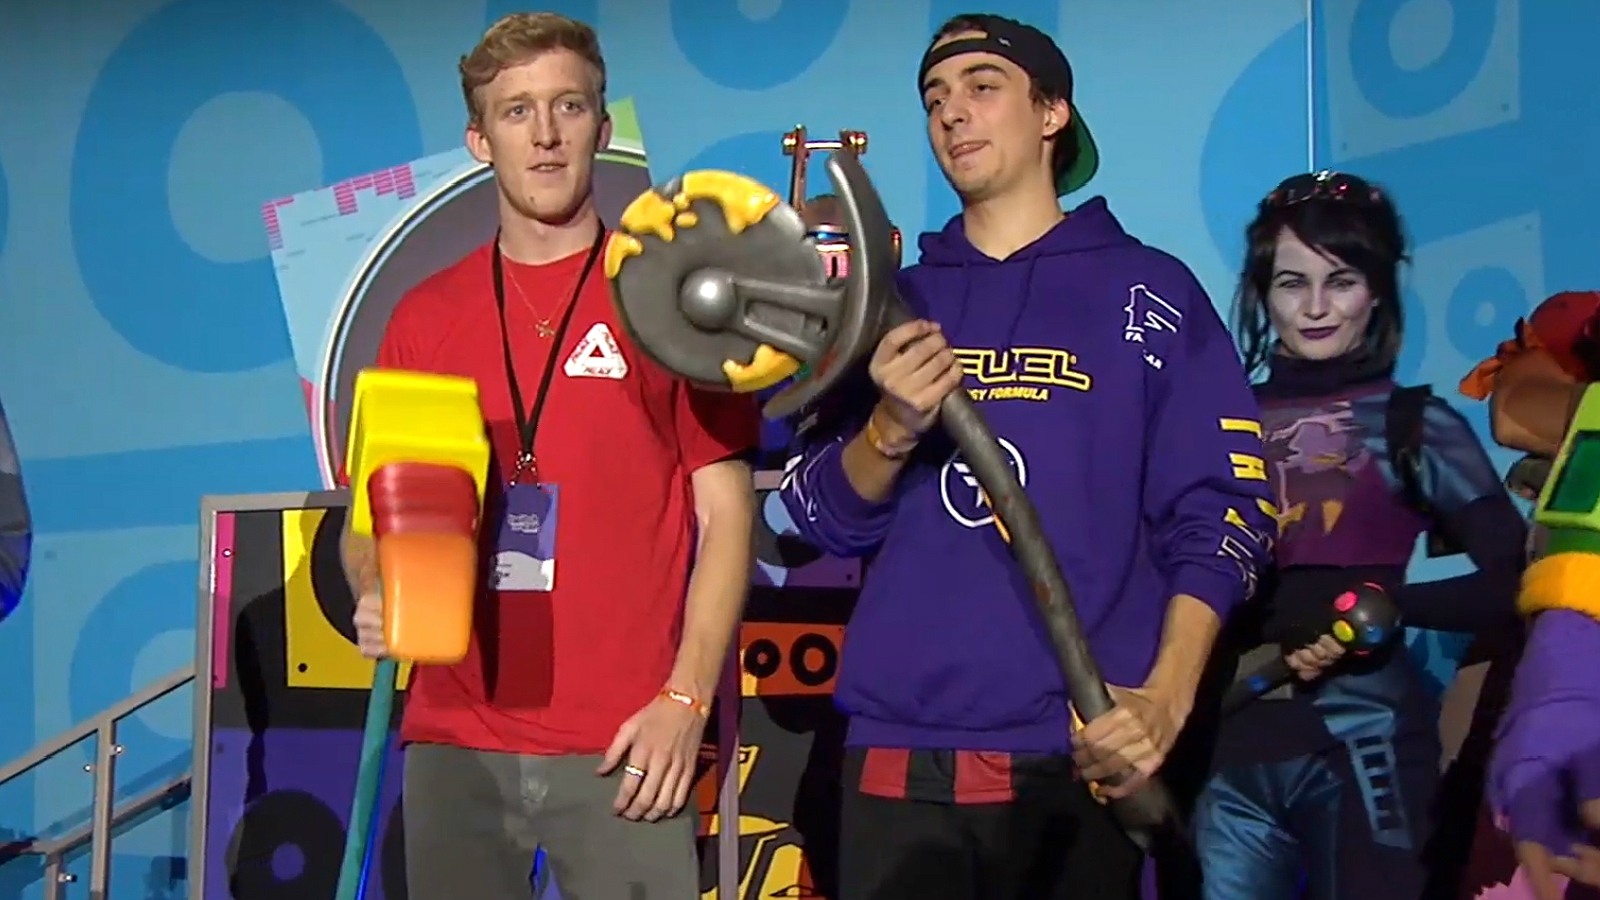 Tfue and Cloak after winning a Fortnite tournament.